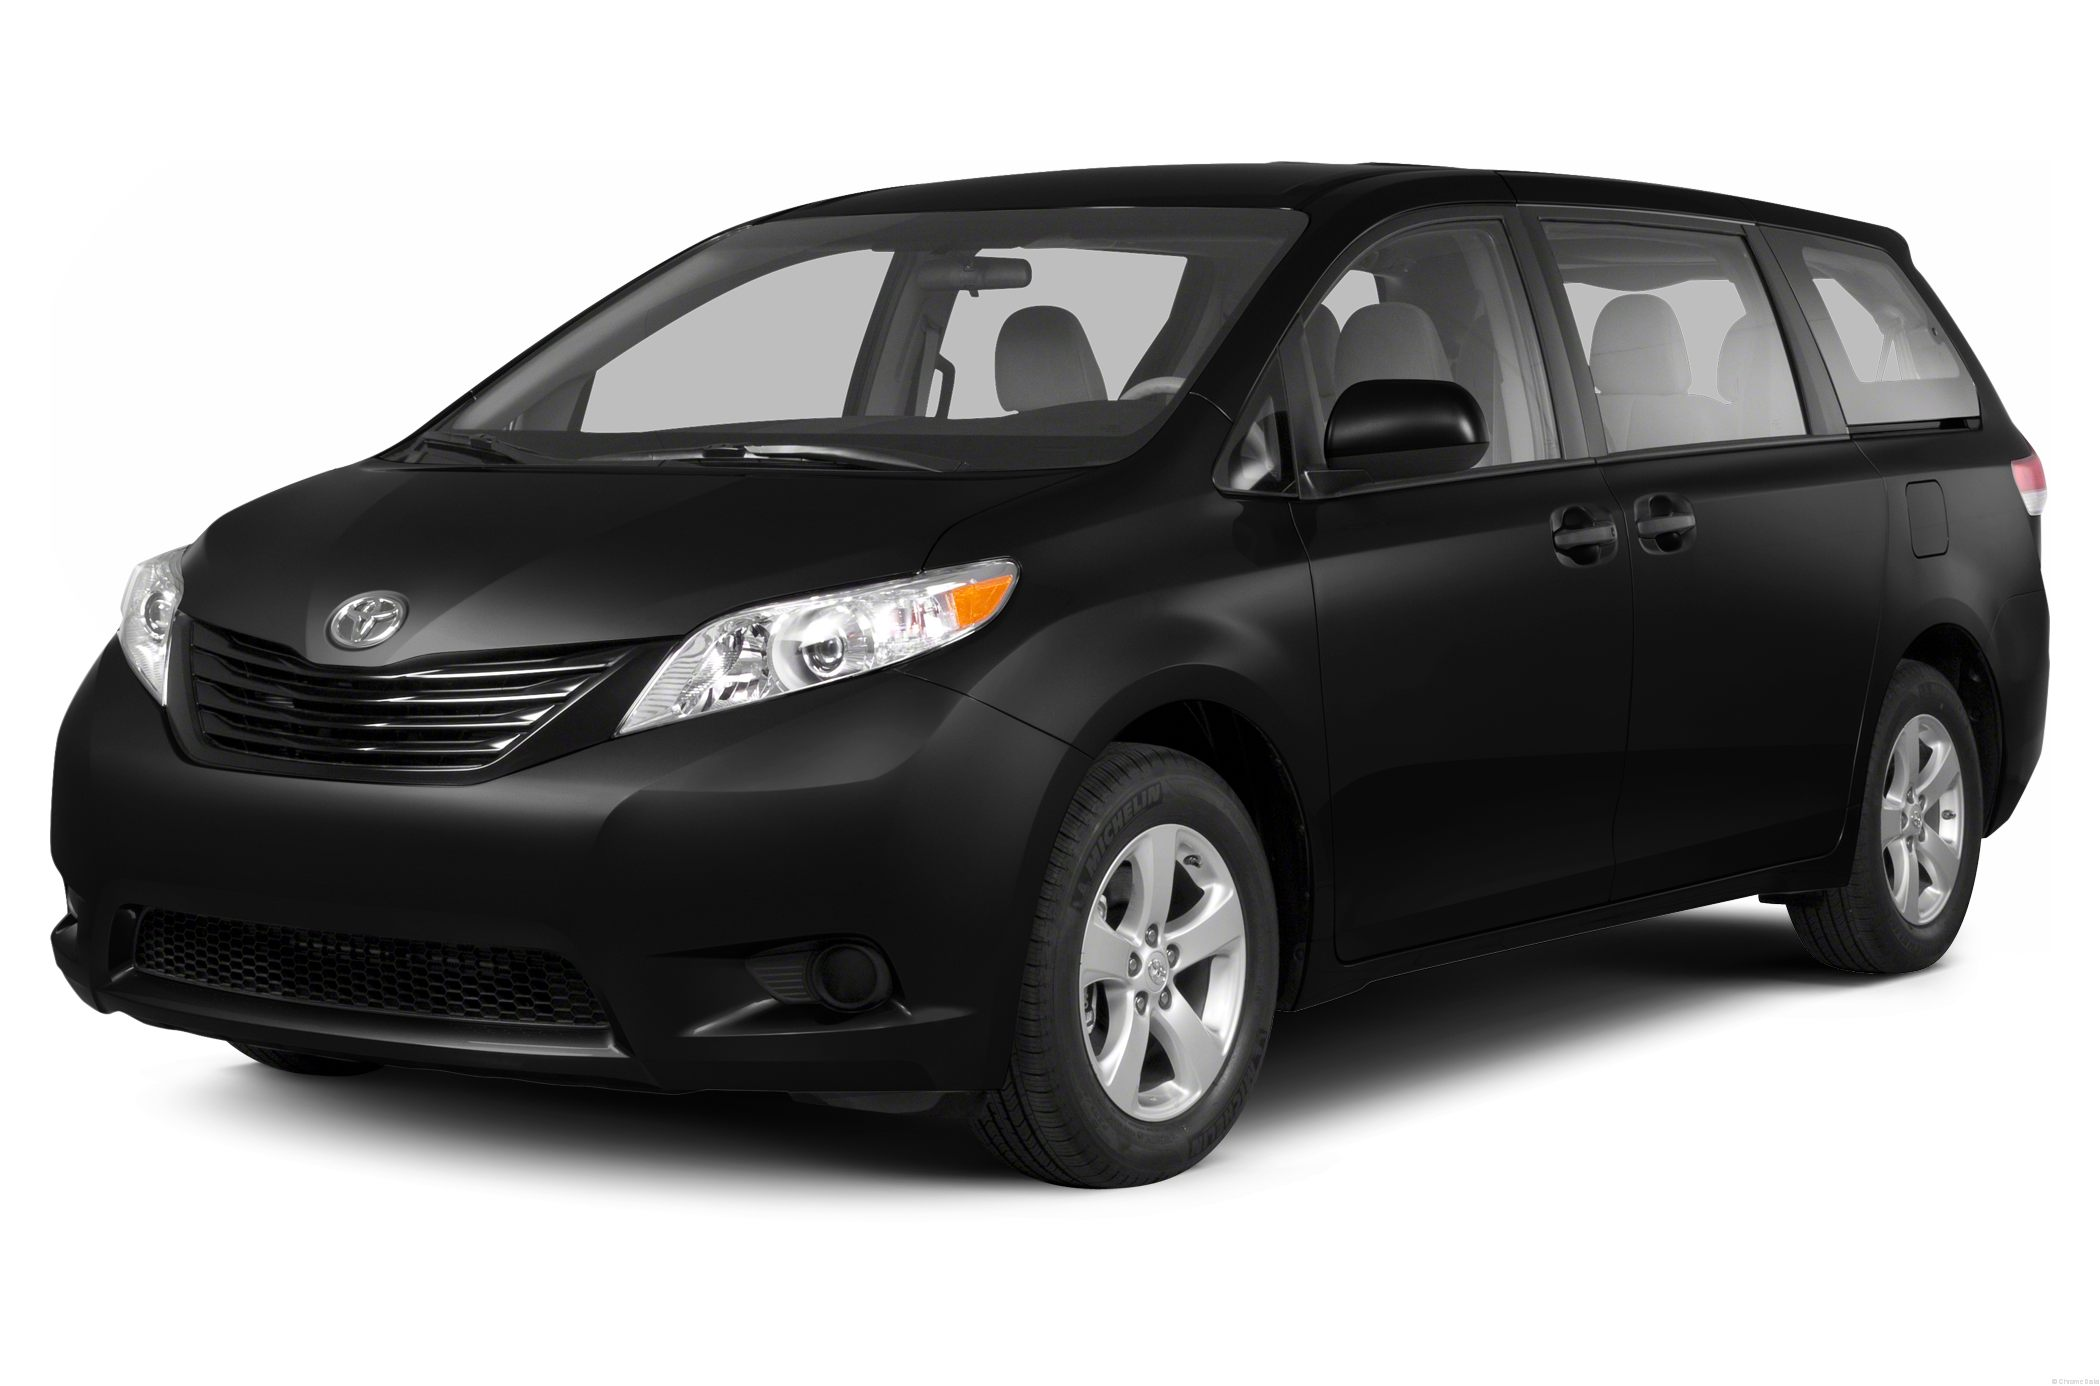 Toyota Sienna rental cars